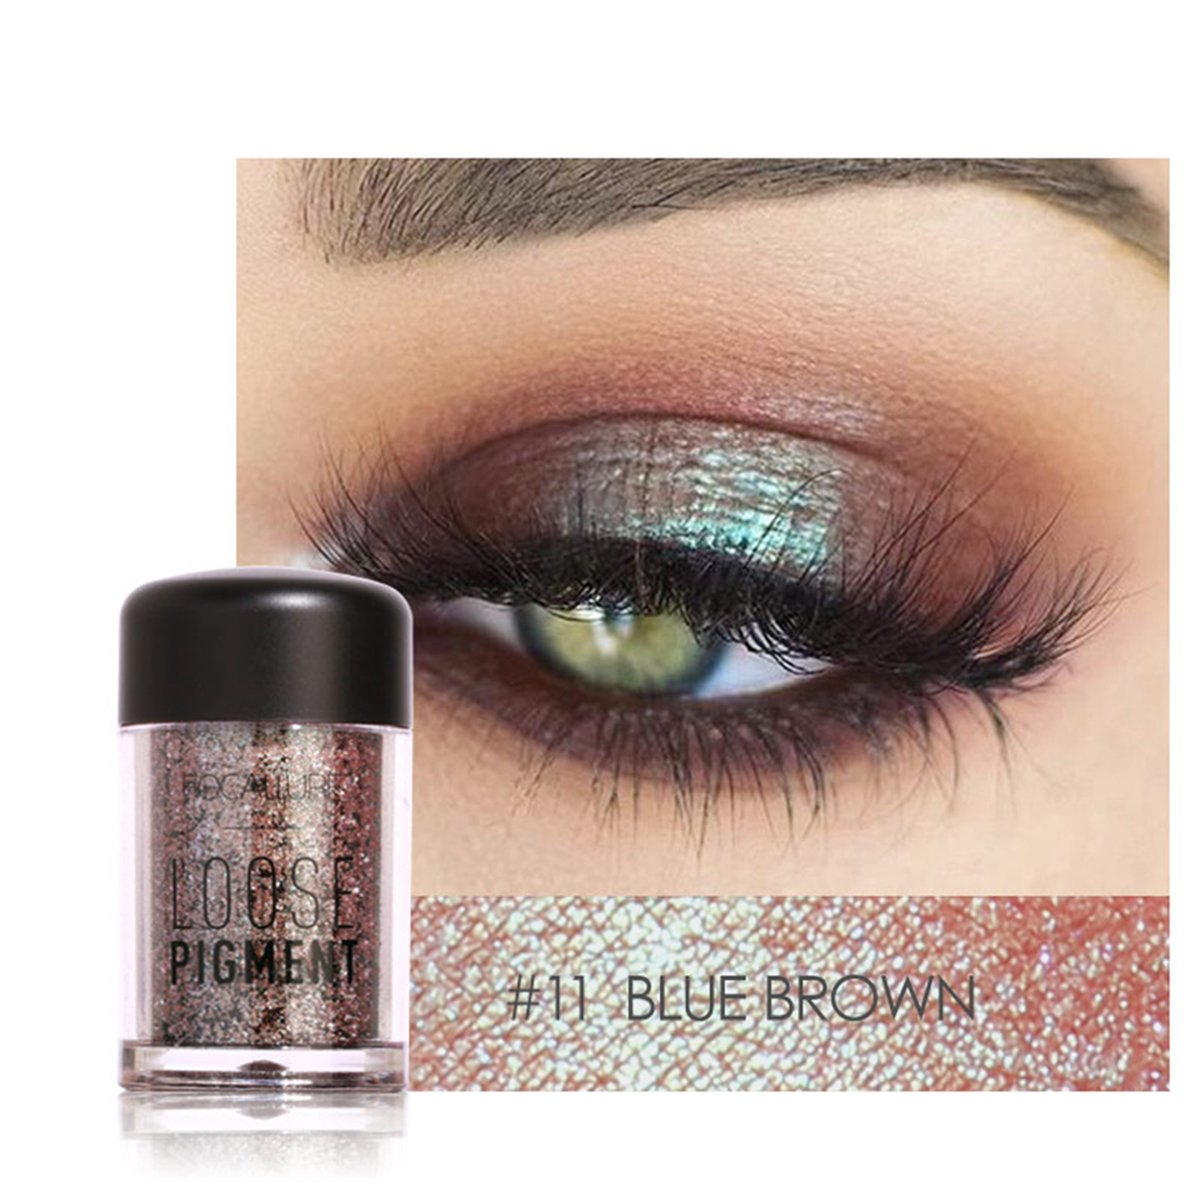 Beauty Essentials Beauty & Health 12 Color Diamond Glitter Eyeshadow Palette Gold Shine Eyeshadow Glitter Shiny Eyeshadow Blue Eye Shadows Cosmetics Tool High Quality And Inexpensive